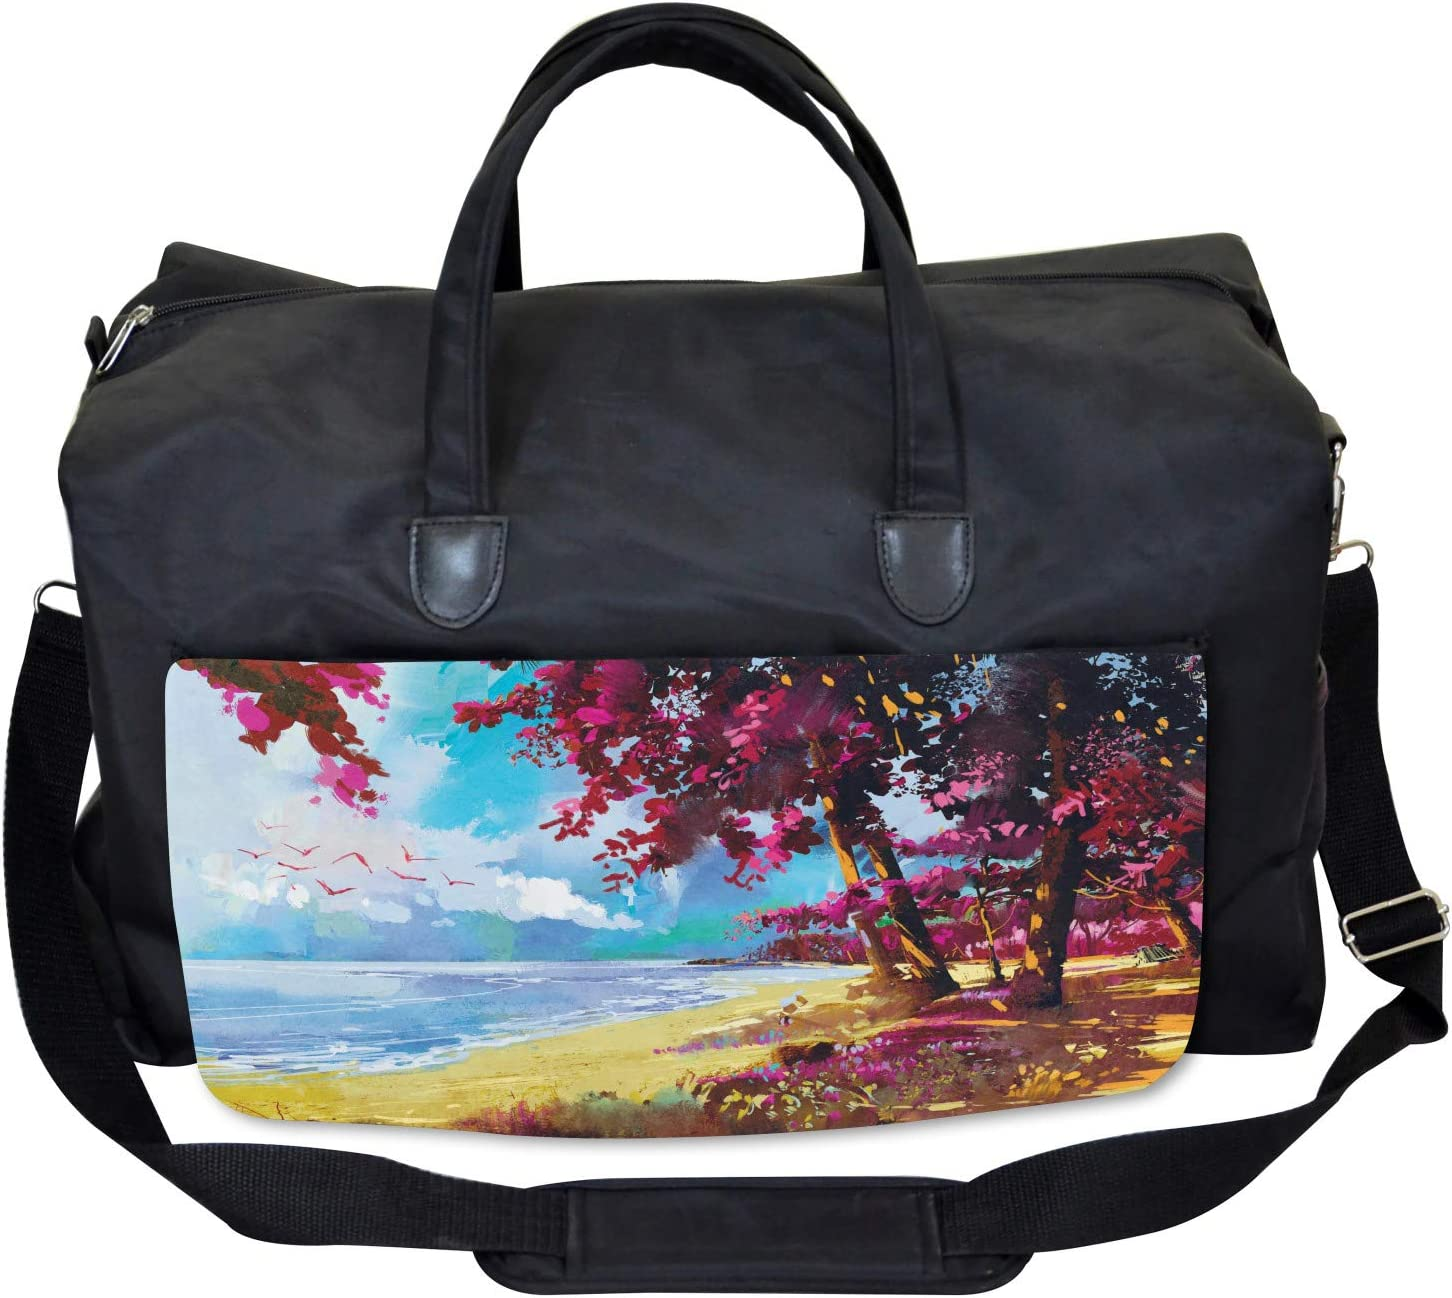 Ambesonne Floral Gym Bag Large Weekender Carry-on Summer Blossom Trees